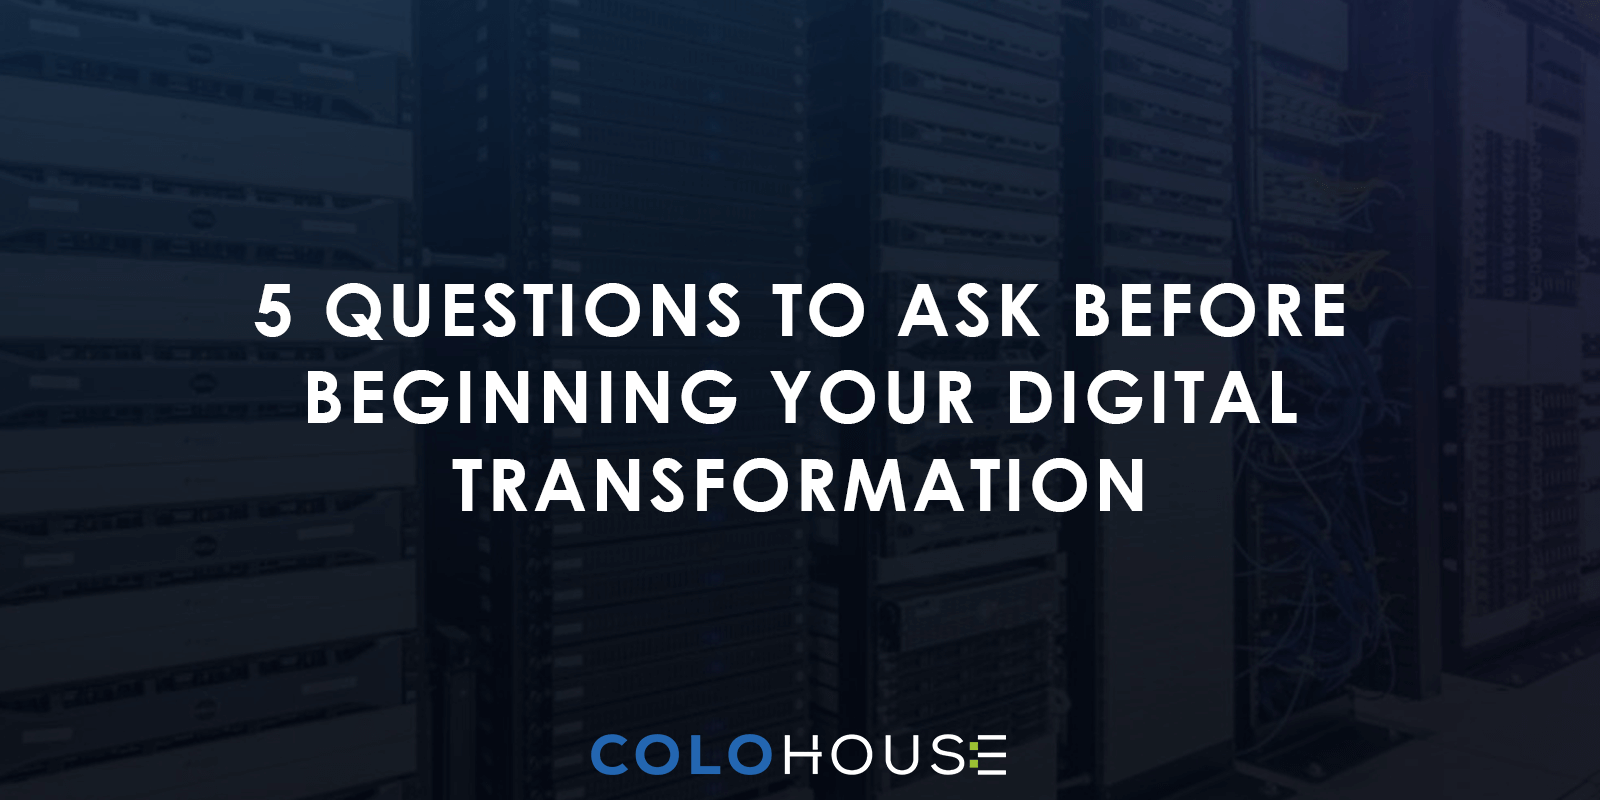 blog title: 5 questions to ask before beginning your digital transformation